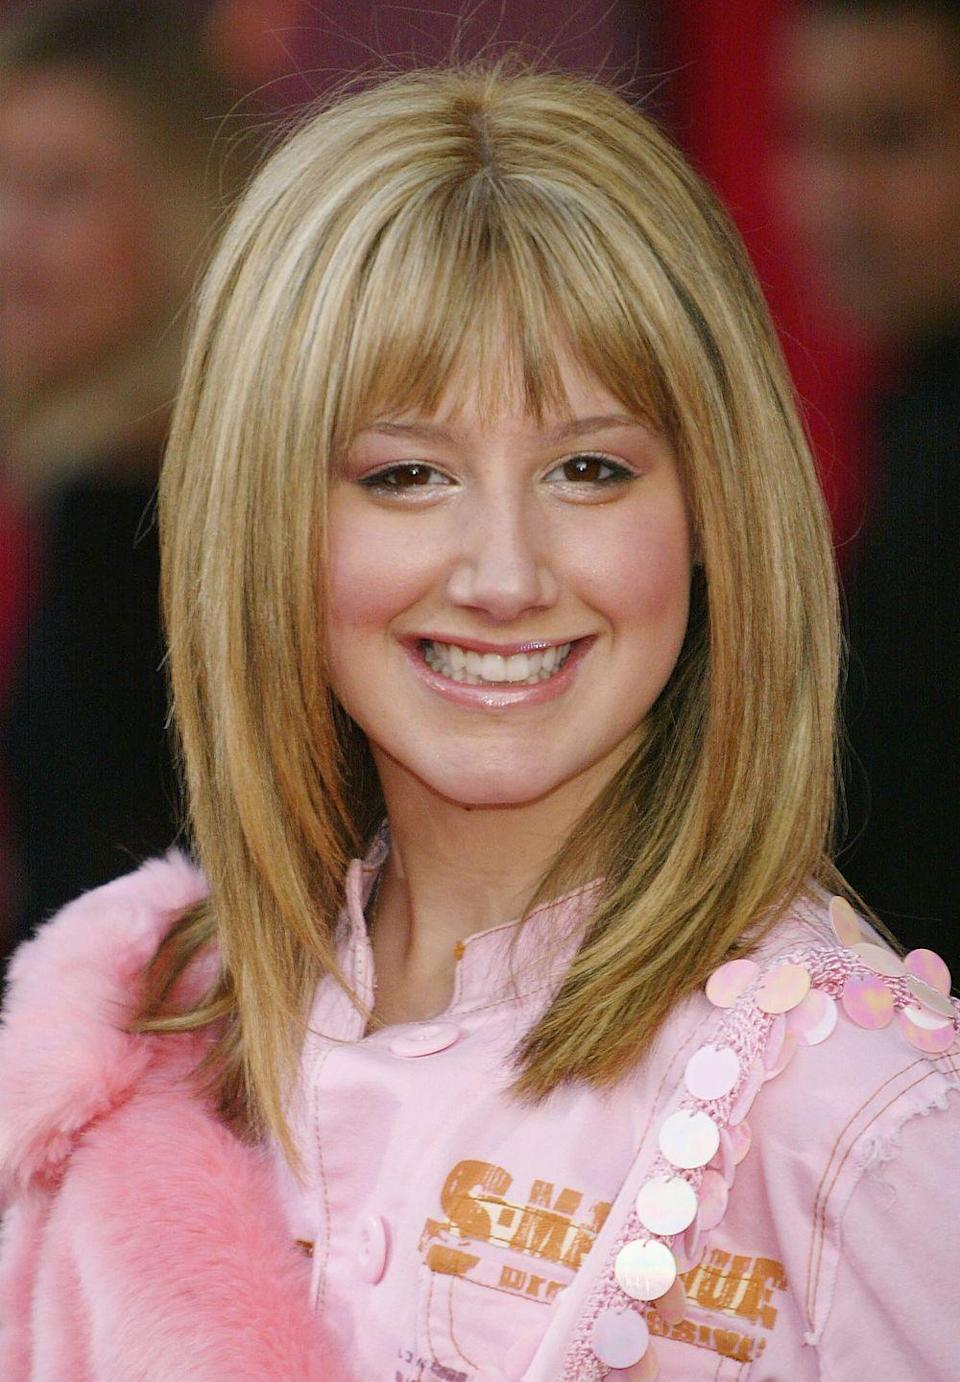 "<p>Tisdale debuted a spunky blonde hairdo after <a href=""https://www.seventeen.com/celebrity/movies-tv/a31886/things-you-never-knew-about-the-suite-life-of-zack-and-cody/"" rel=""nofollow noopener"" target=""_blank"" data-ylk=""slk:earning the role of Maddie Fitzpatrick"" class=""link rapid-noclick-resp"">earning the role of Maddie Fitzpatrick</a> on Disney. She must have liked it, because the actress has remained blonde long after the show ended. </p>"